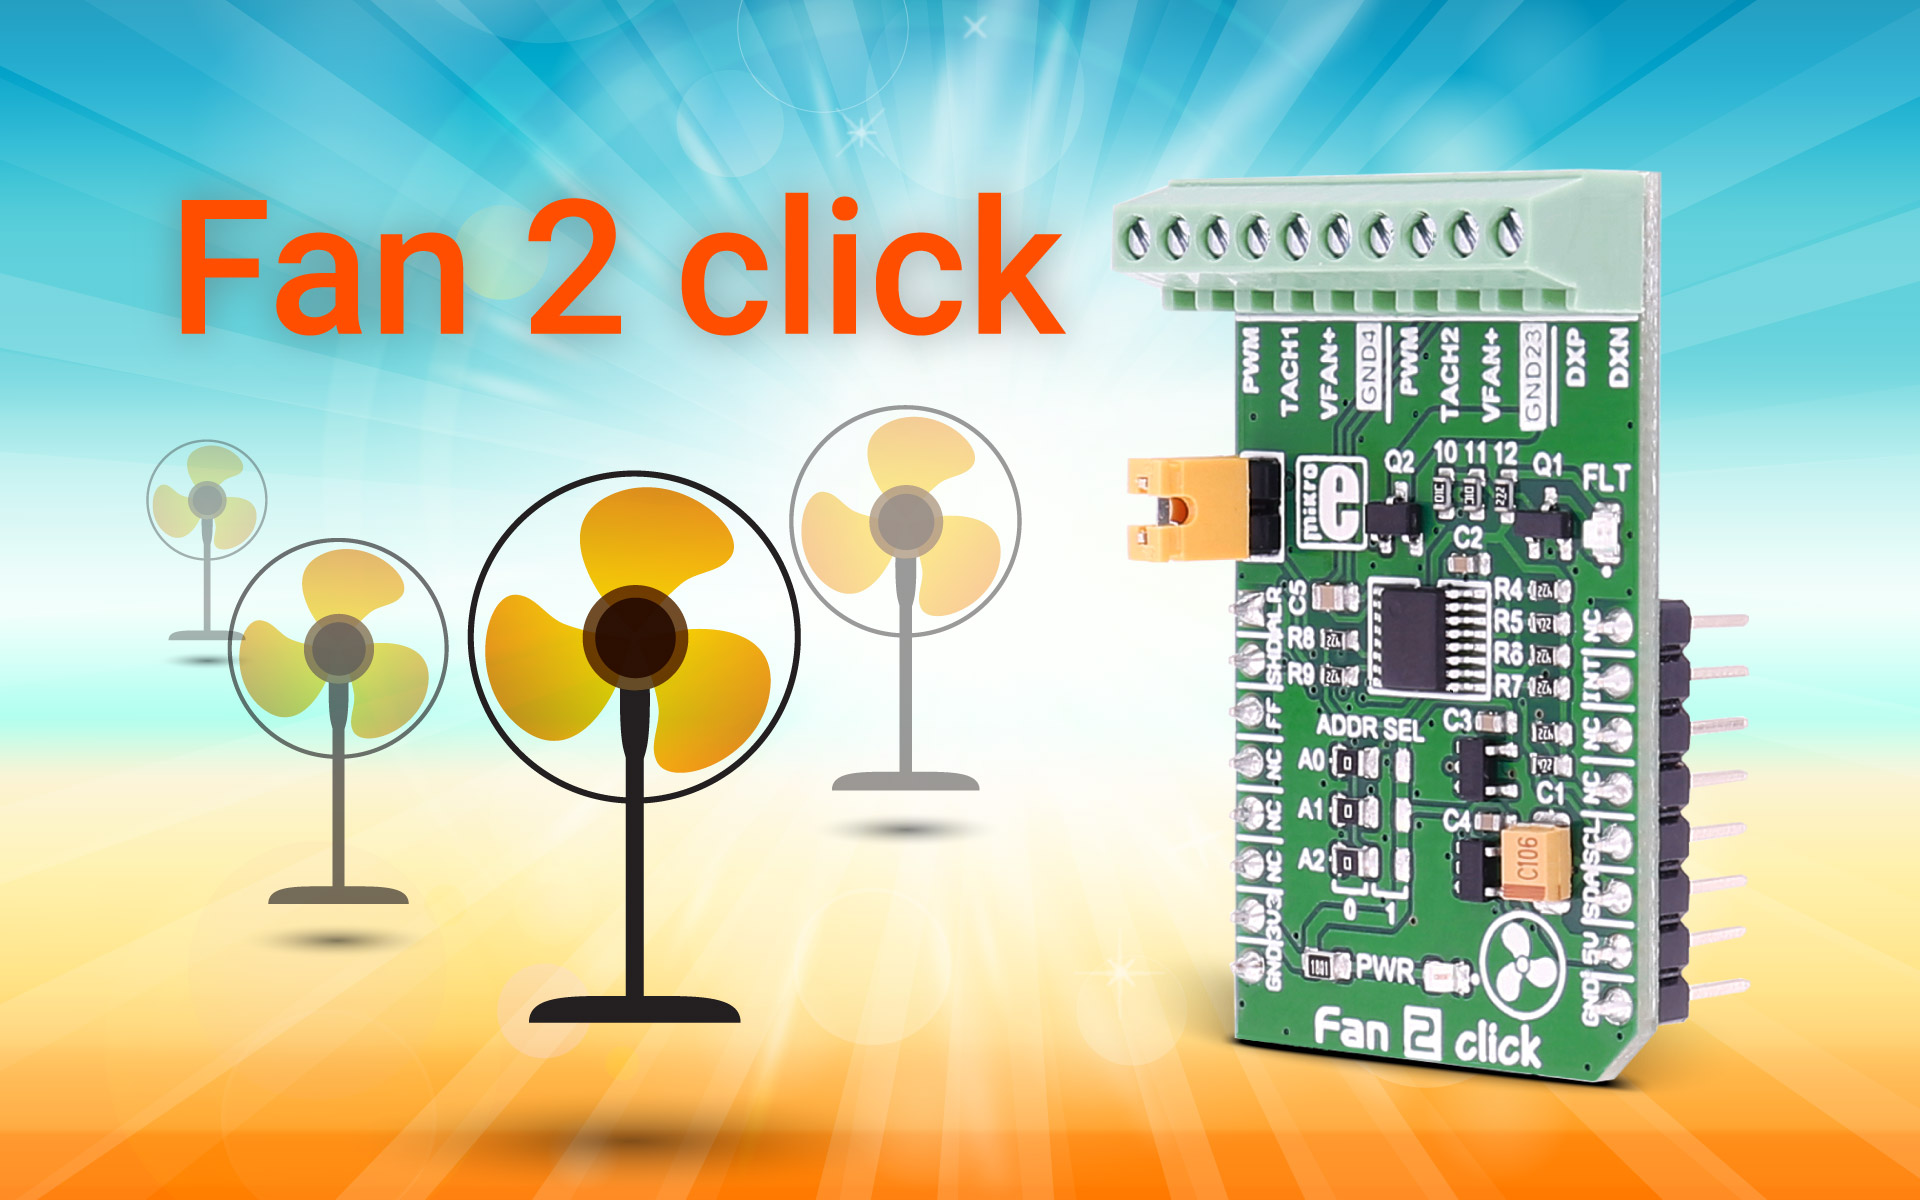 Fan 2 click – cool down with our newest click